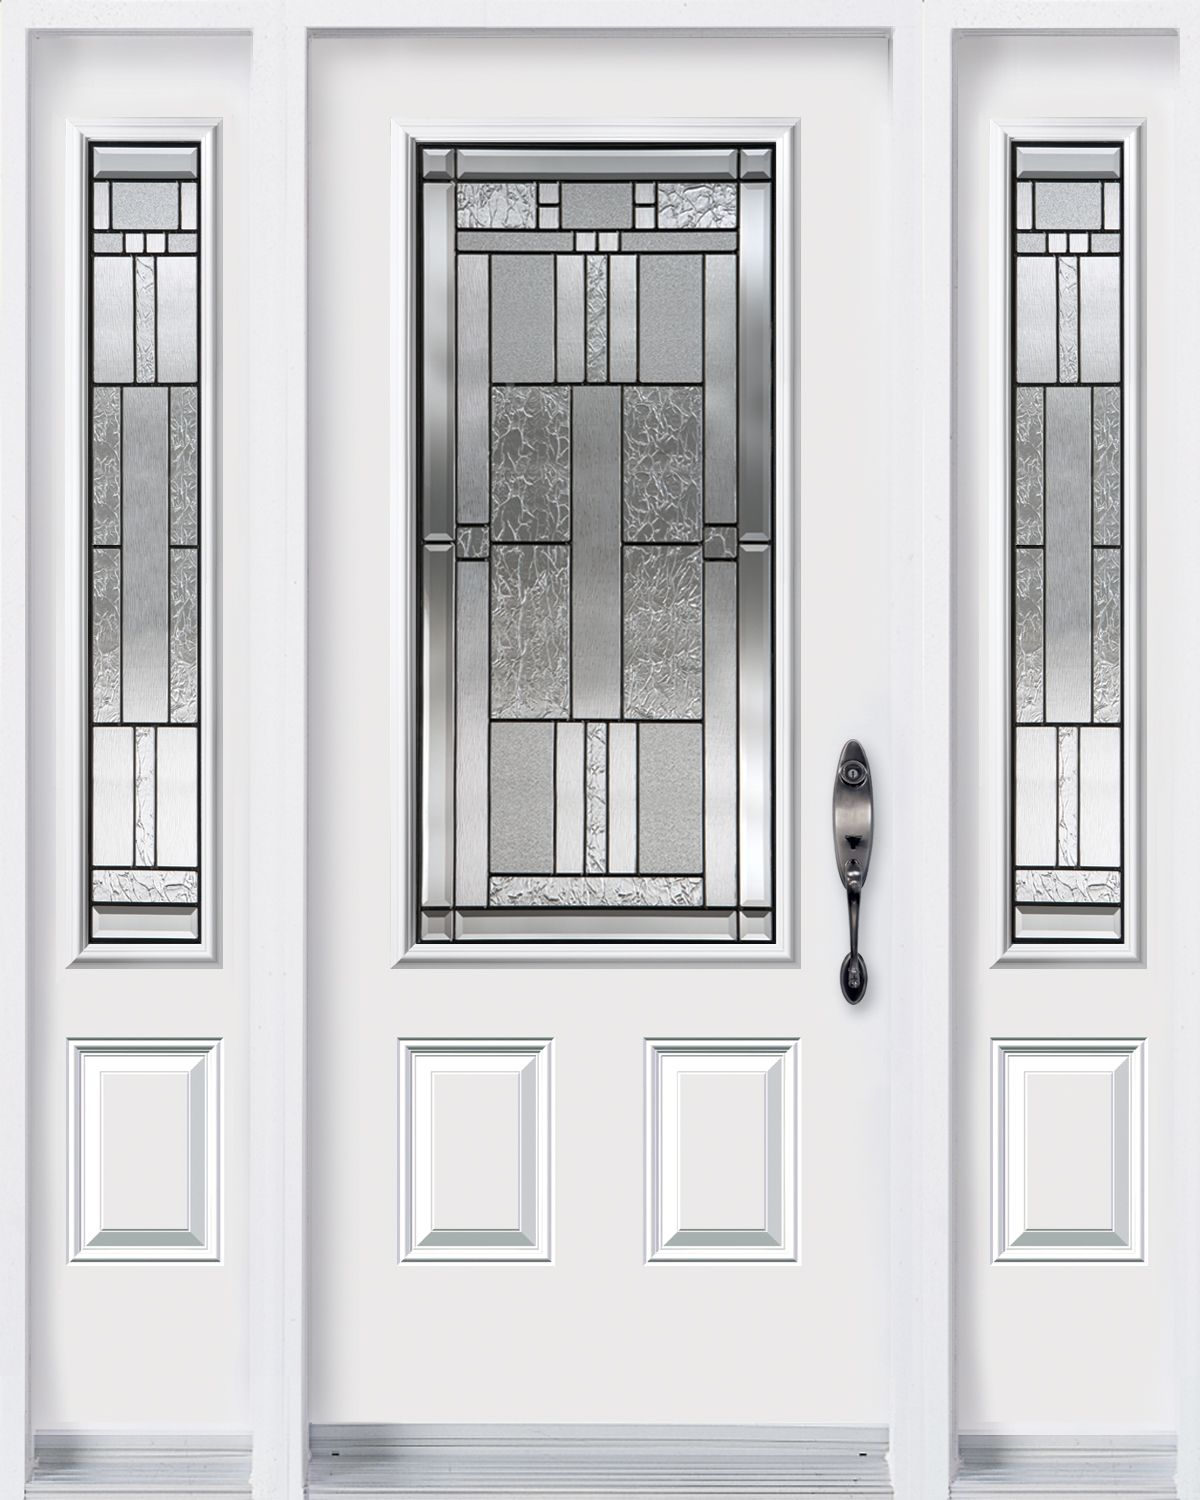 Steel Doors (Traditional Series) | Kohltech Windows and Entrance Systems Canada - Available at Centennial Glass in Ottawa - Steel entrances equip yu2026  sc 1 st  Pinterest : centennial doors - pezcame.com